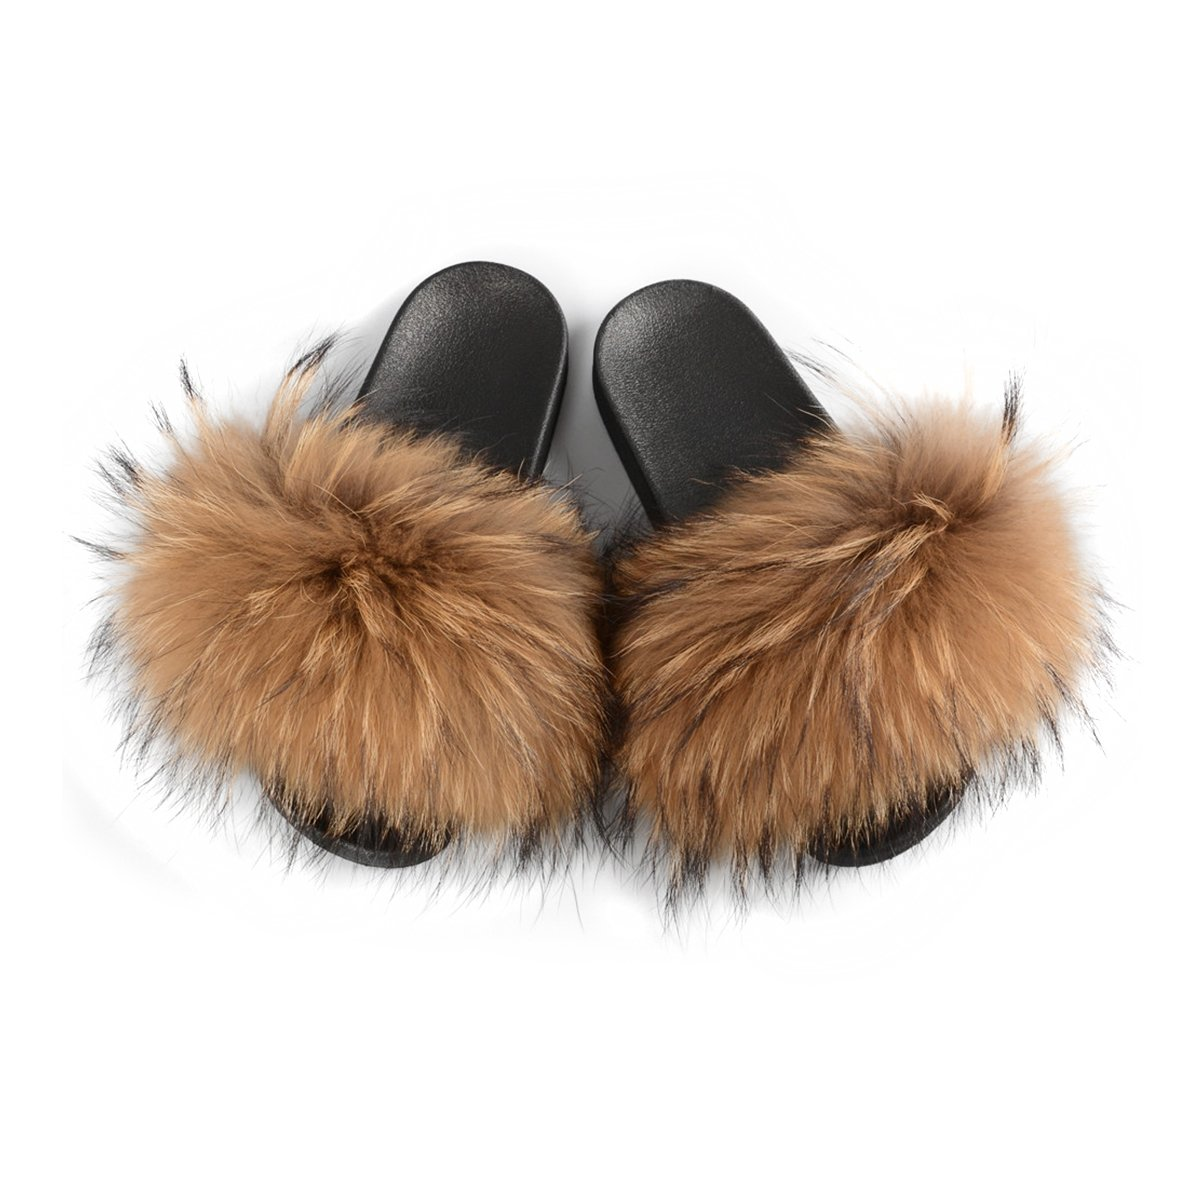 Jancoco Max Womens Luxury Real Raccon Fur Slippers Slides Indoor Outdoor Flat Soles Soft Summer Shoes Camel by Jancoco Max